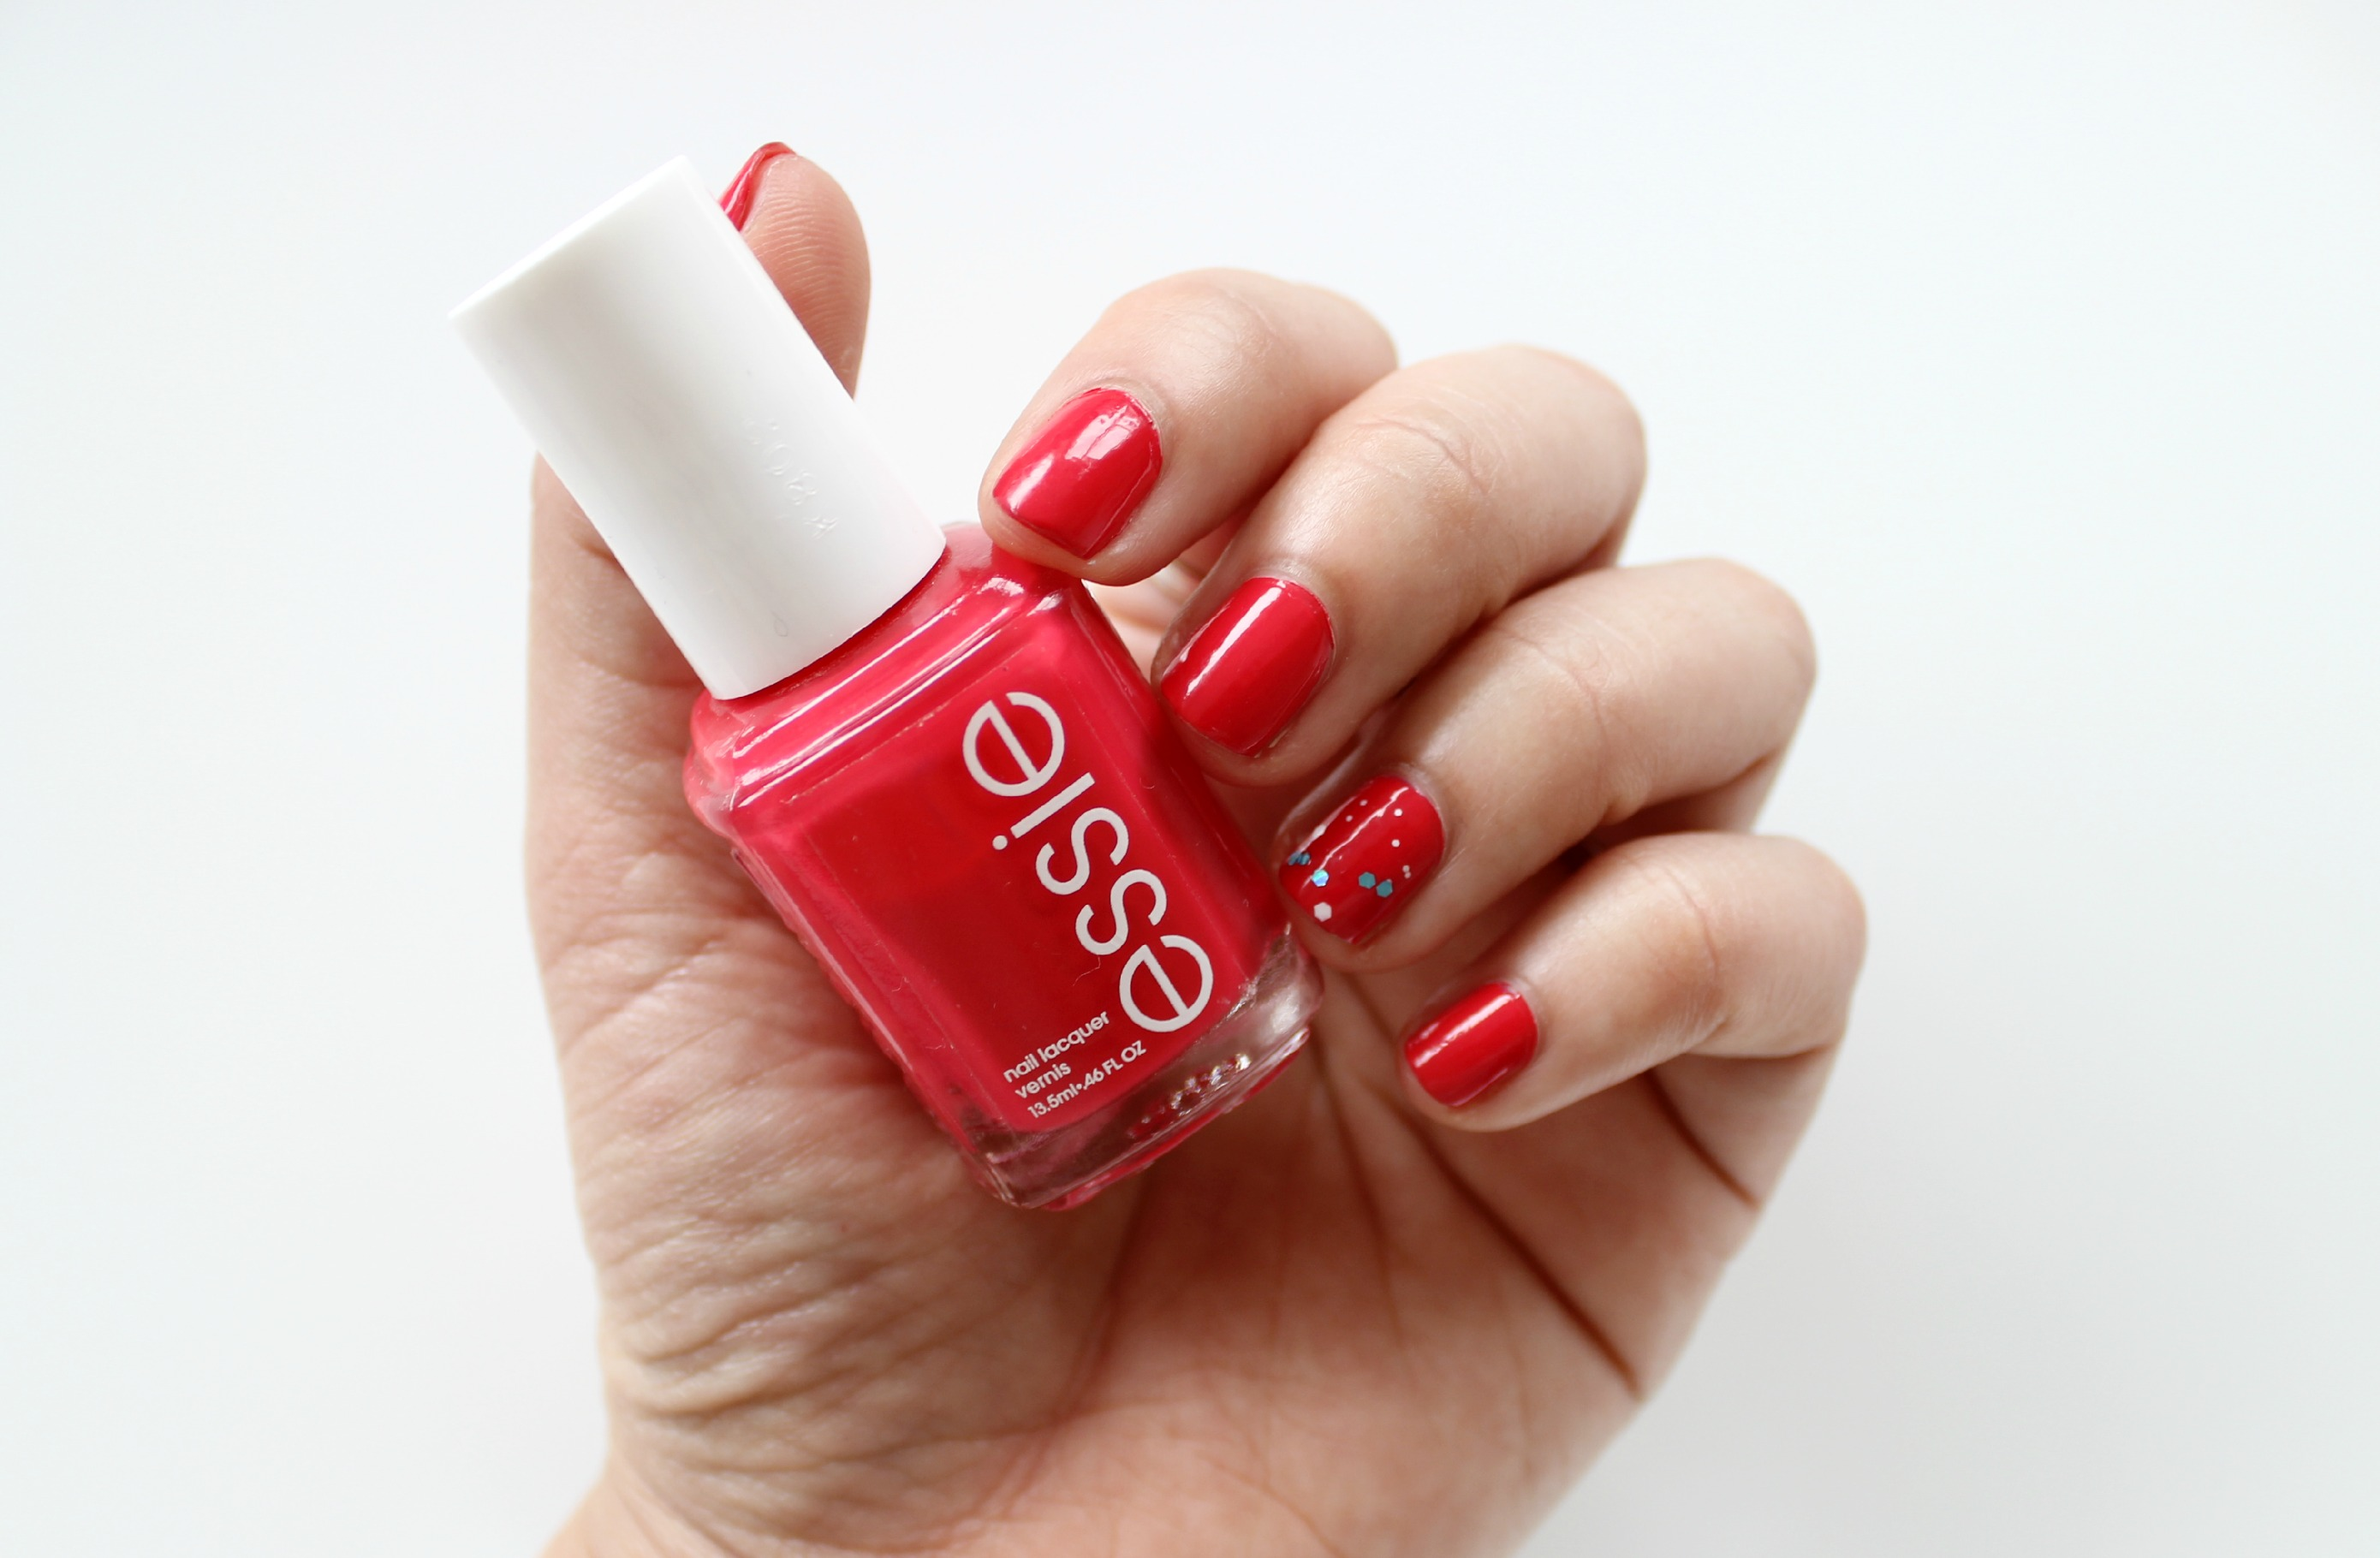 Essie Nail Polish – Bora Bora Pedispa Nails – Katy Freeway at Bunker ...